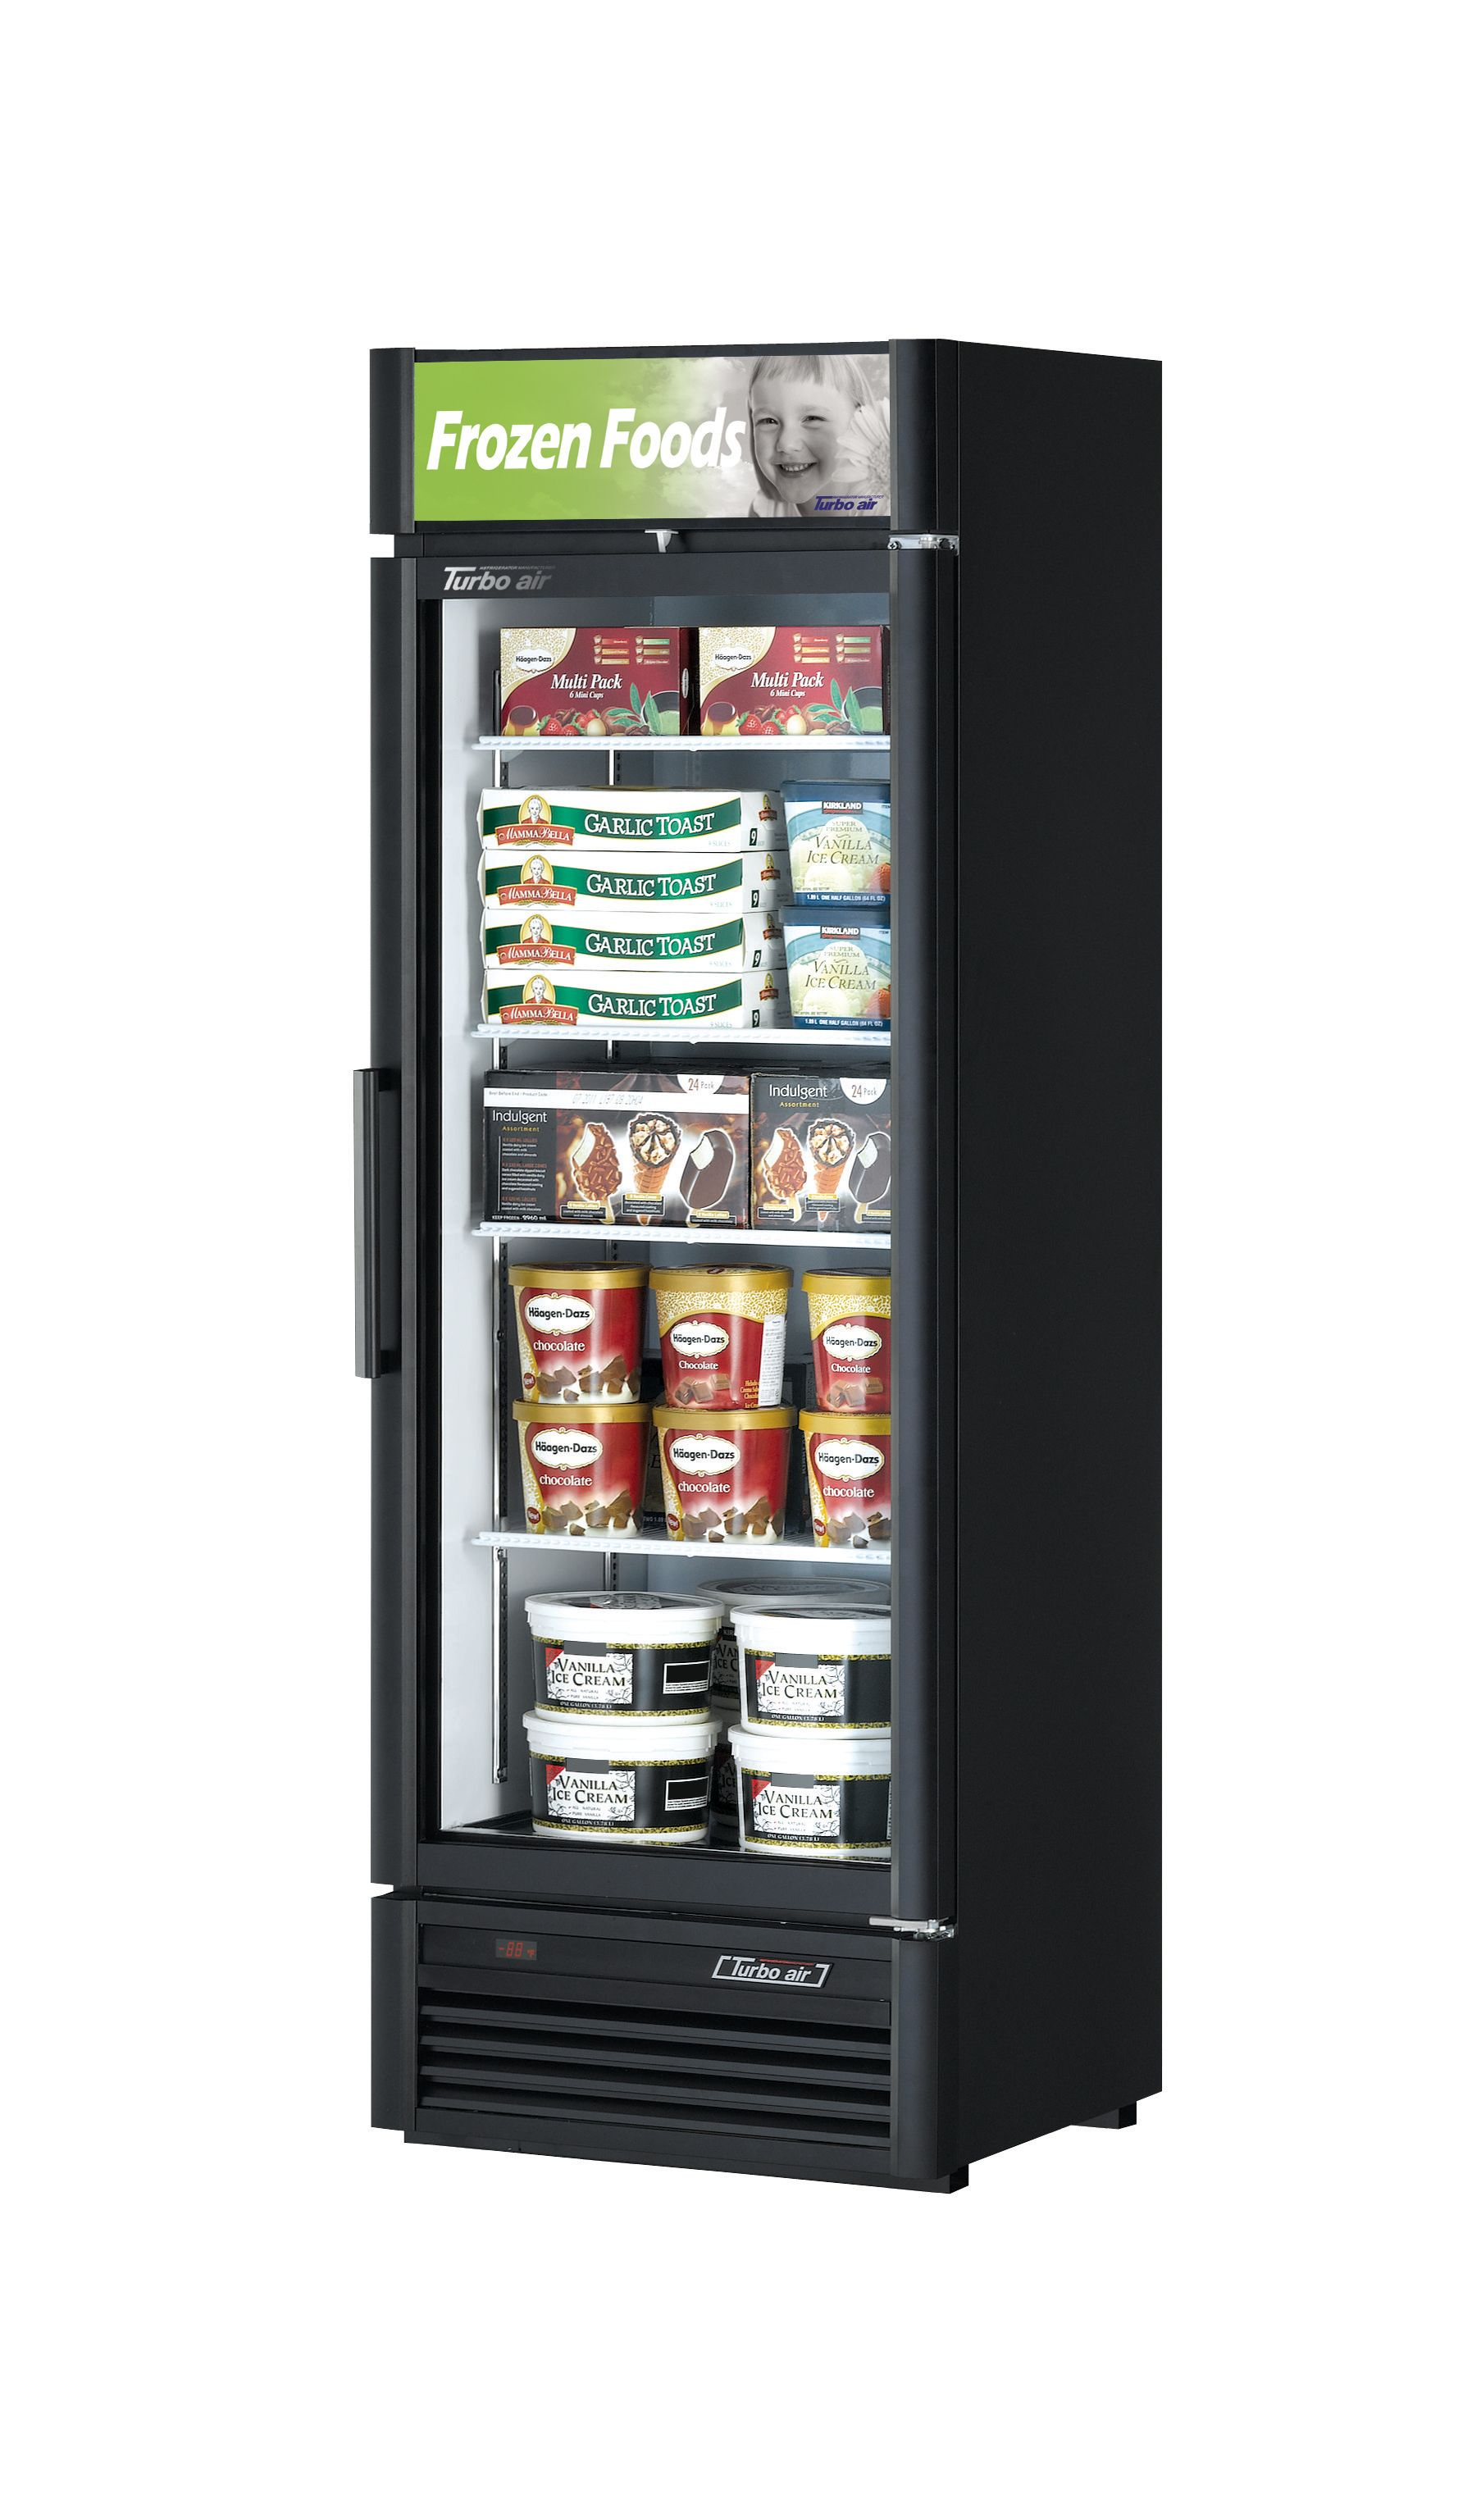 Freezer 15 9 Cu Ft 1 Swing Door Congelador 15 9 Pies Cubicos 1 Puerta Batiente Serie Super Deluxe Glass Door Glass Door Refrigerator Single Doors